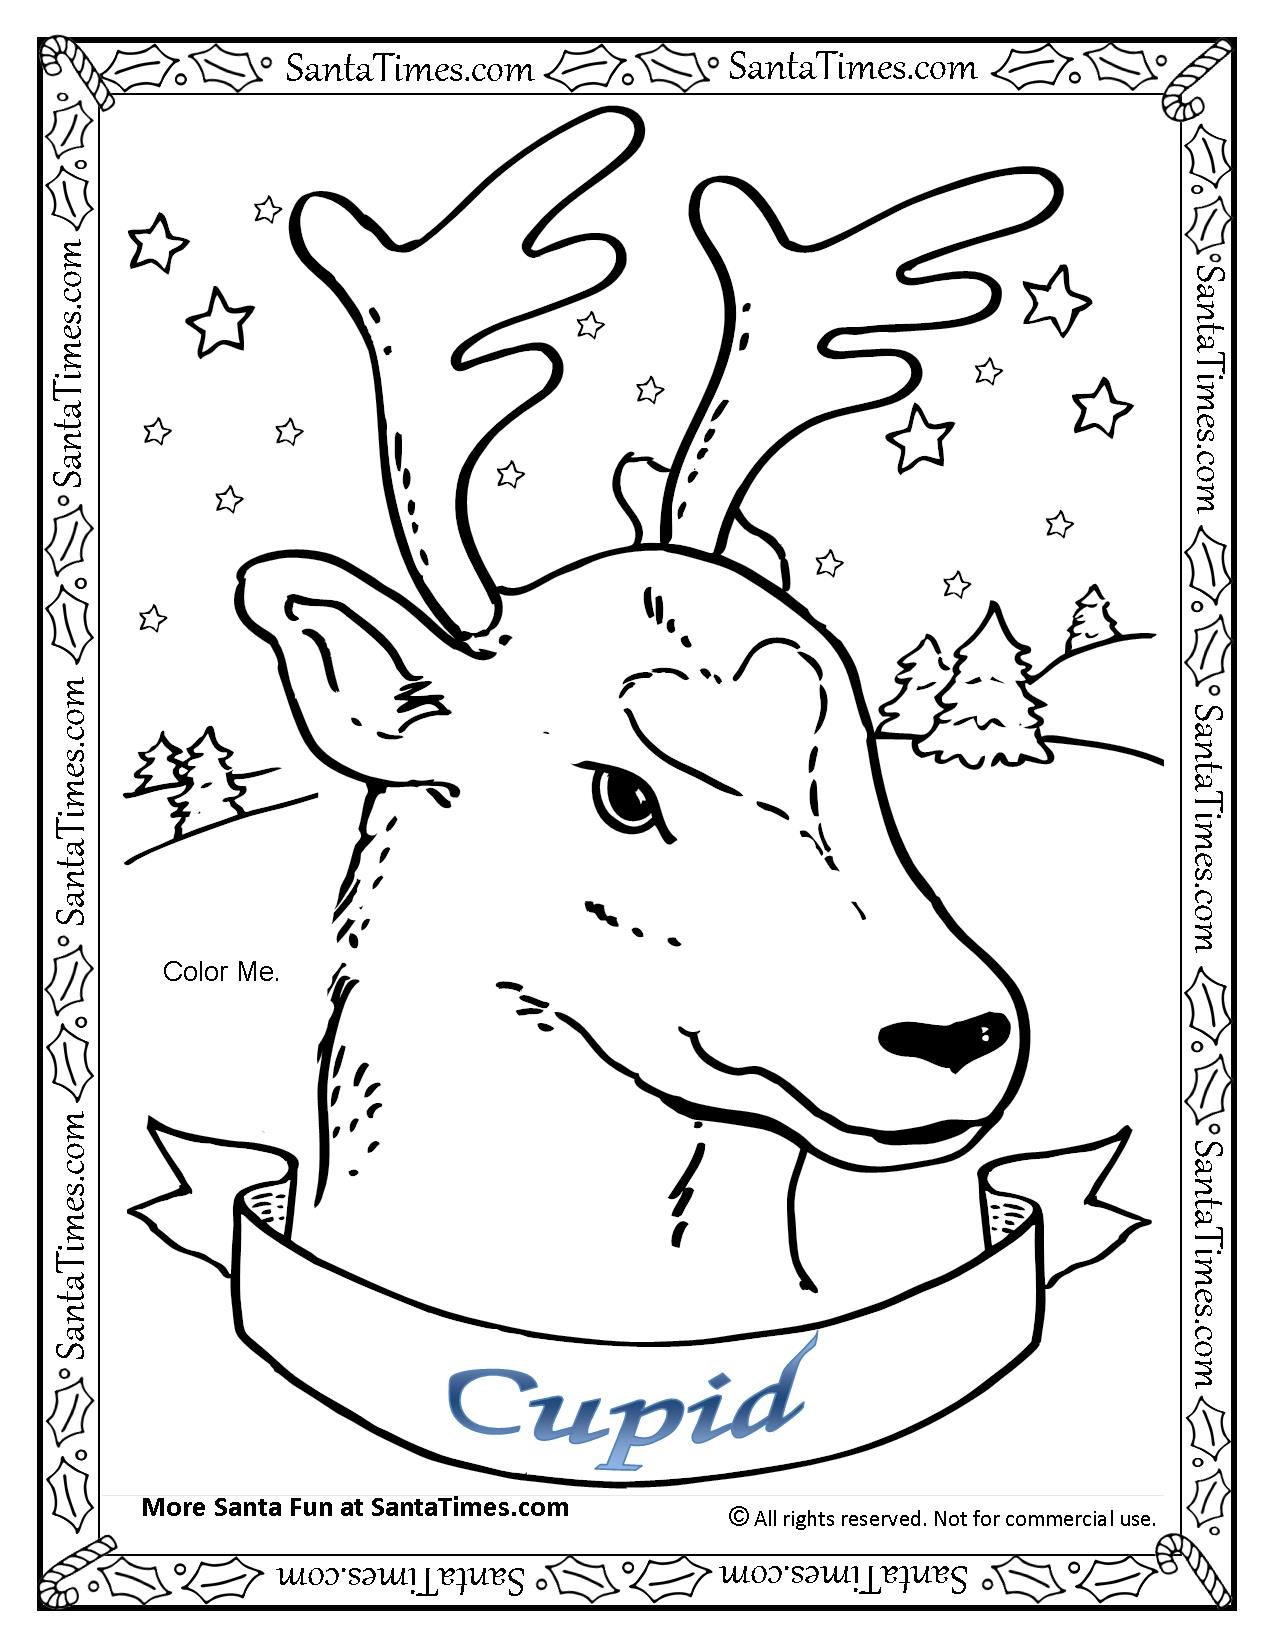 Christmas Santa S Reindeer Coloring Pages With Cupid The